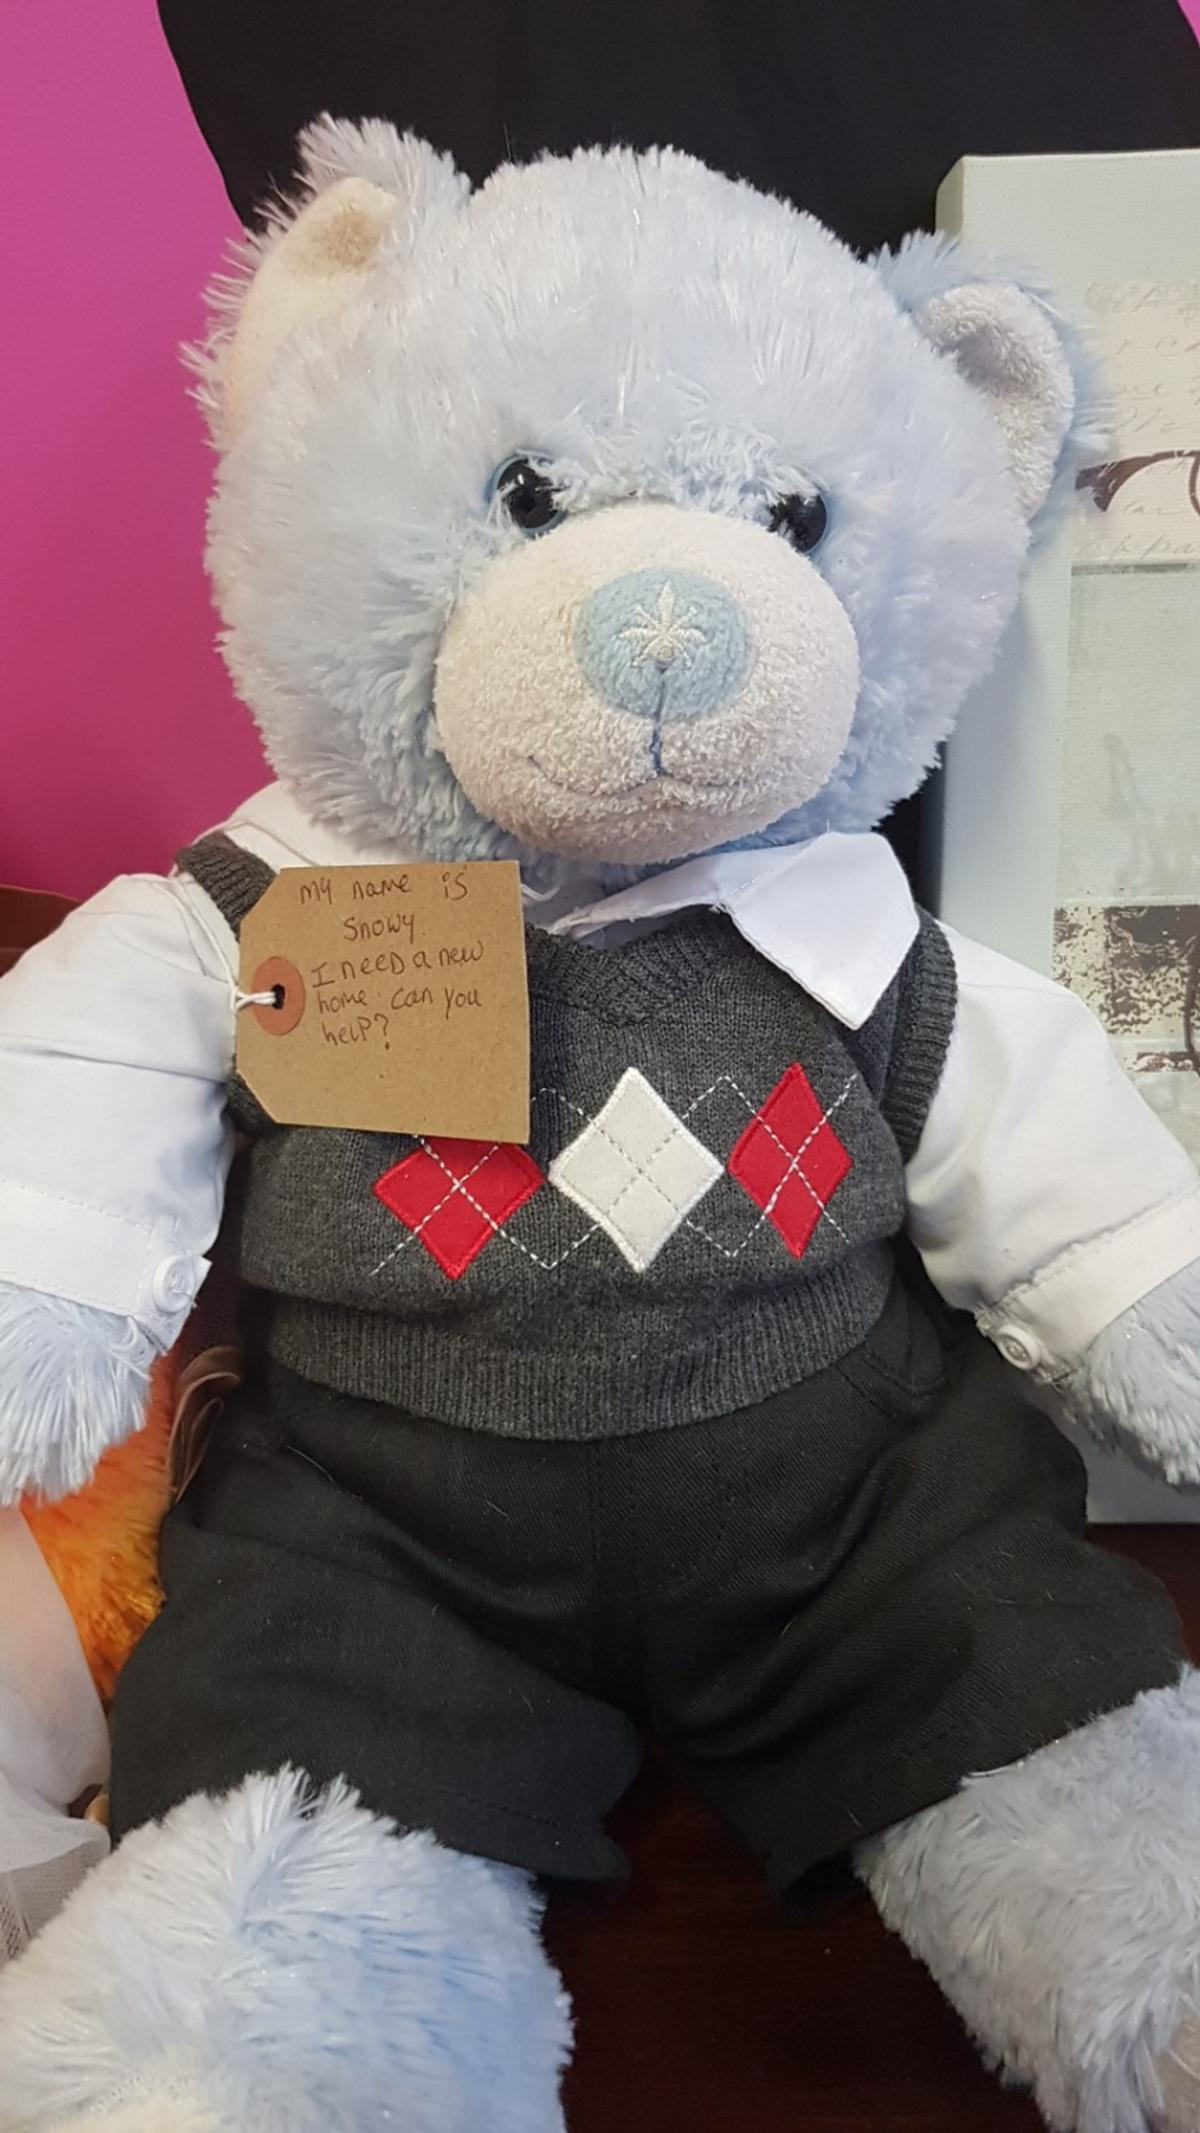 I am a build a bear looking for a new home... can you help me ?.